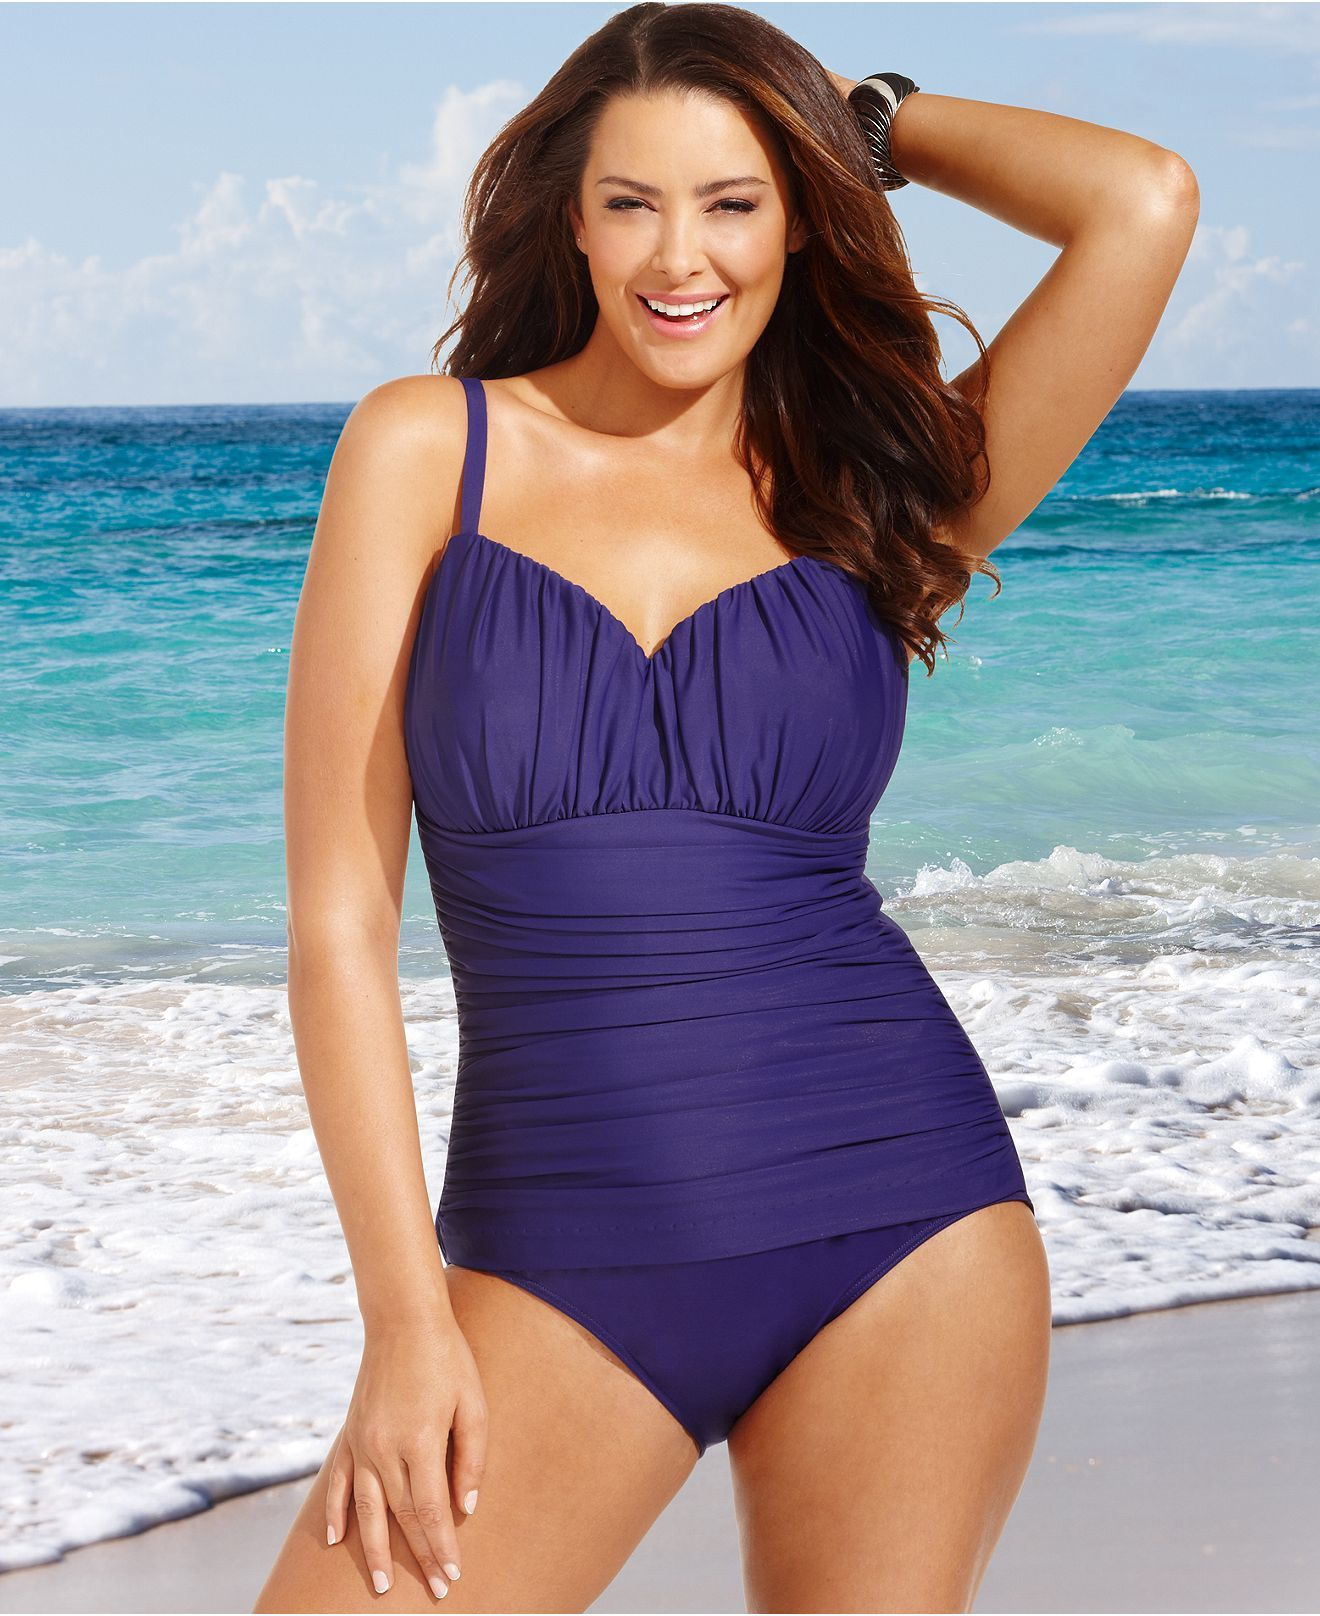 27009b6cf643d $45 Miraclesuit Plus Size Swimsuit, Rialto Ruched One-Piece - Plus Size  Swimwear - Plus Sizes - Macys